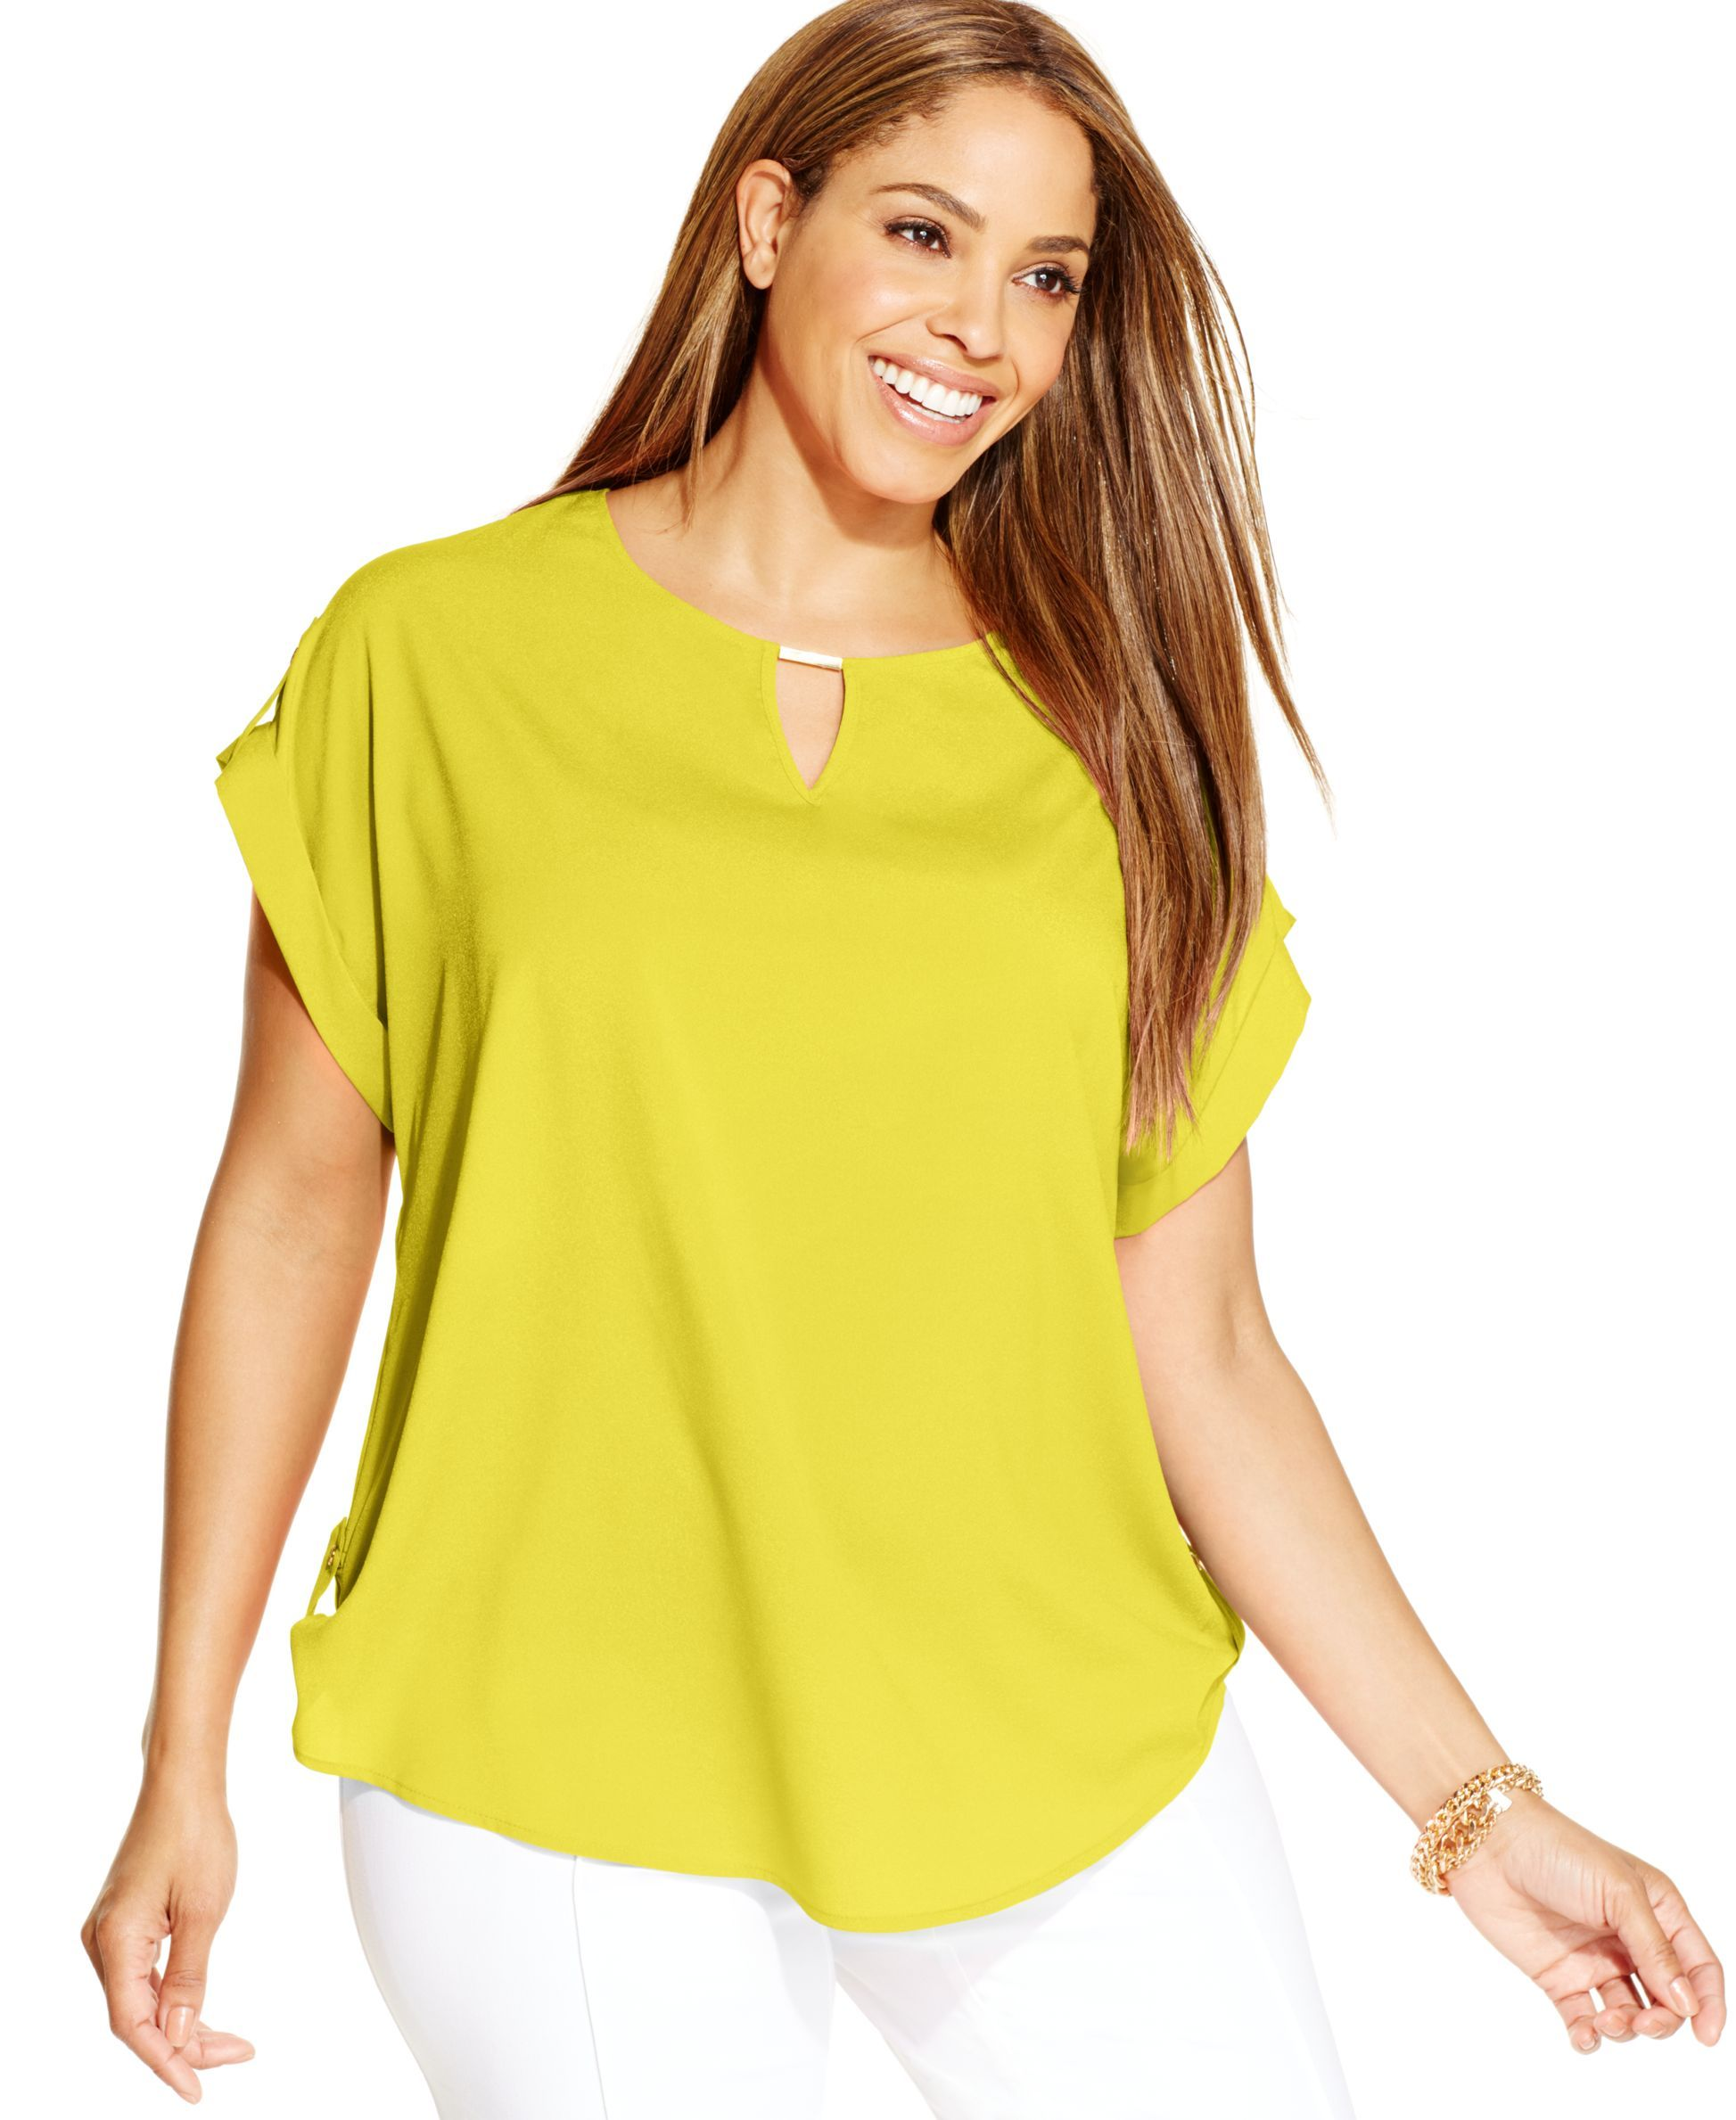 Plus Size Tops Woman Tee Shirts Casual Short Sleeve Summer Blouses T Shirt